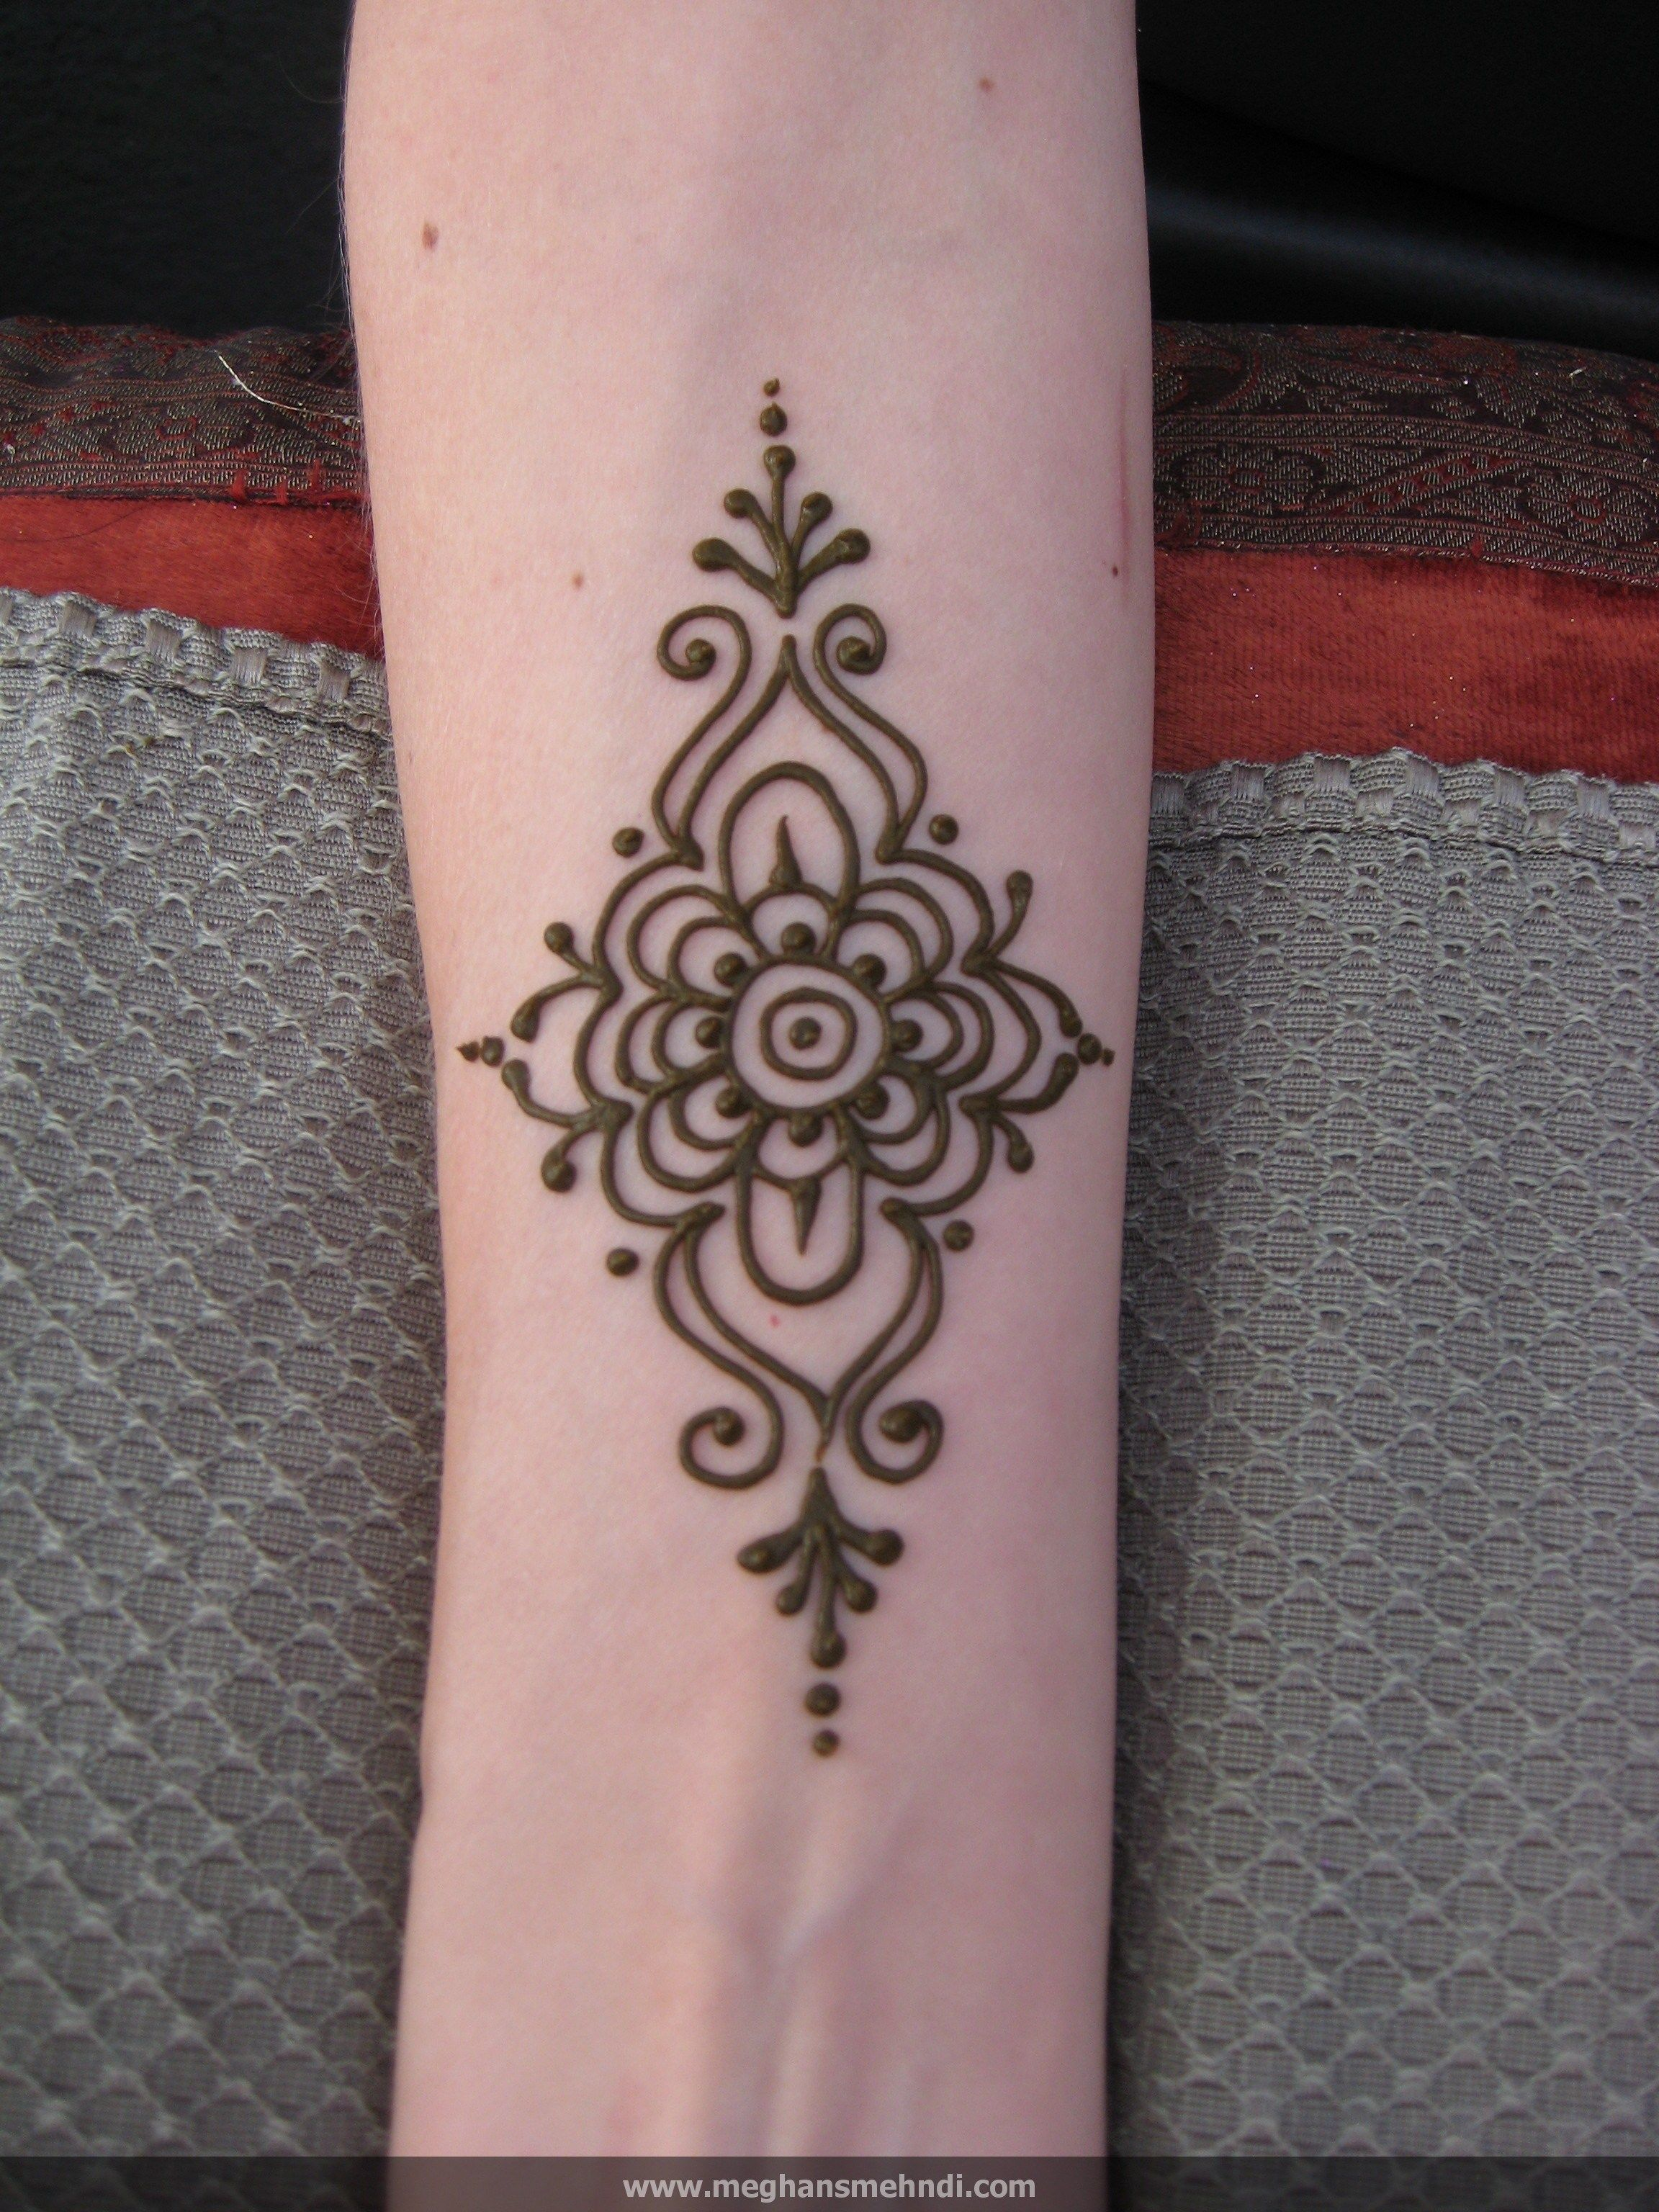 Pin By Angelina Gomes On Henna For The Guests Wrist Henna